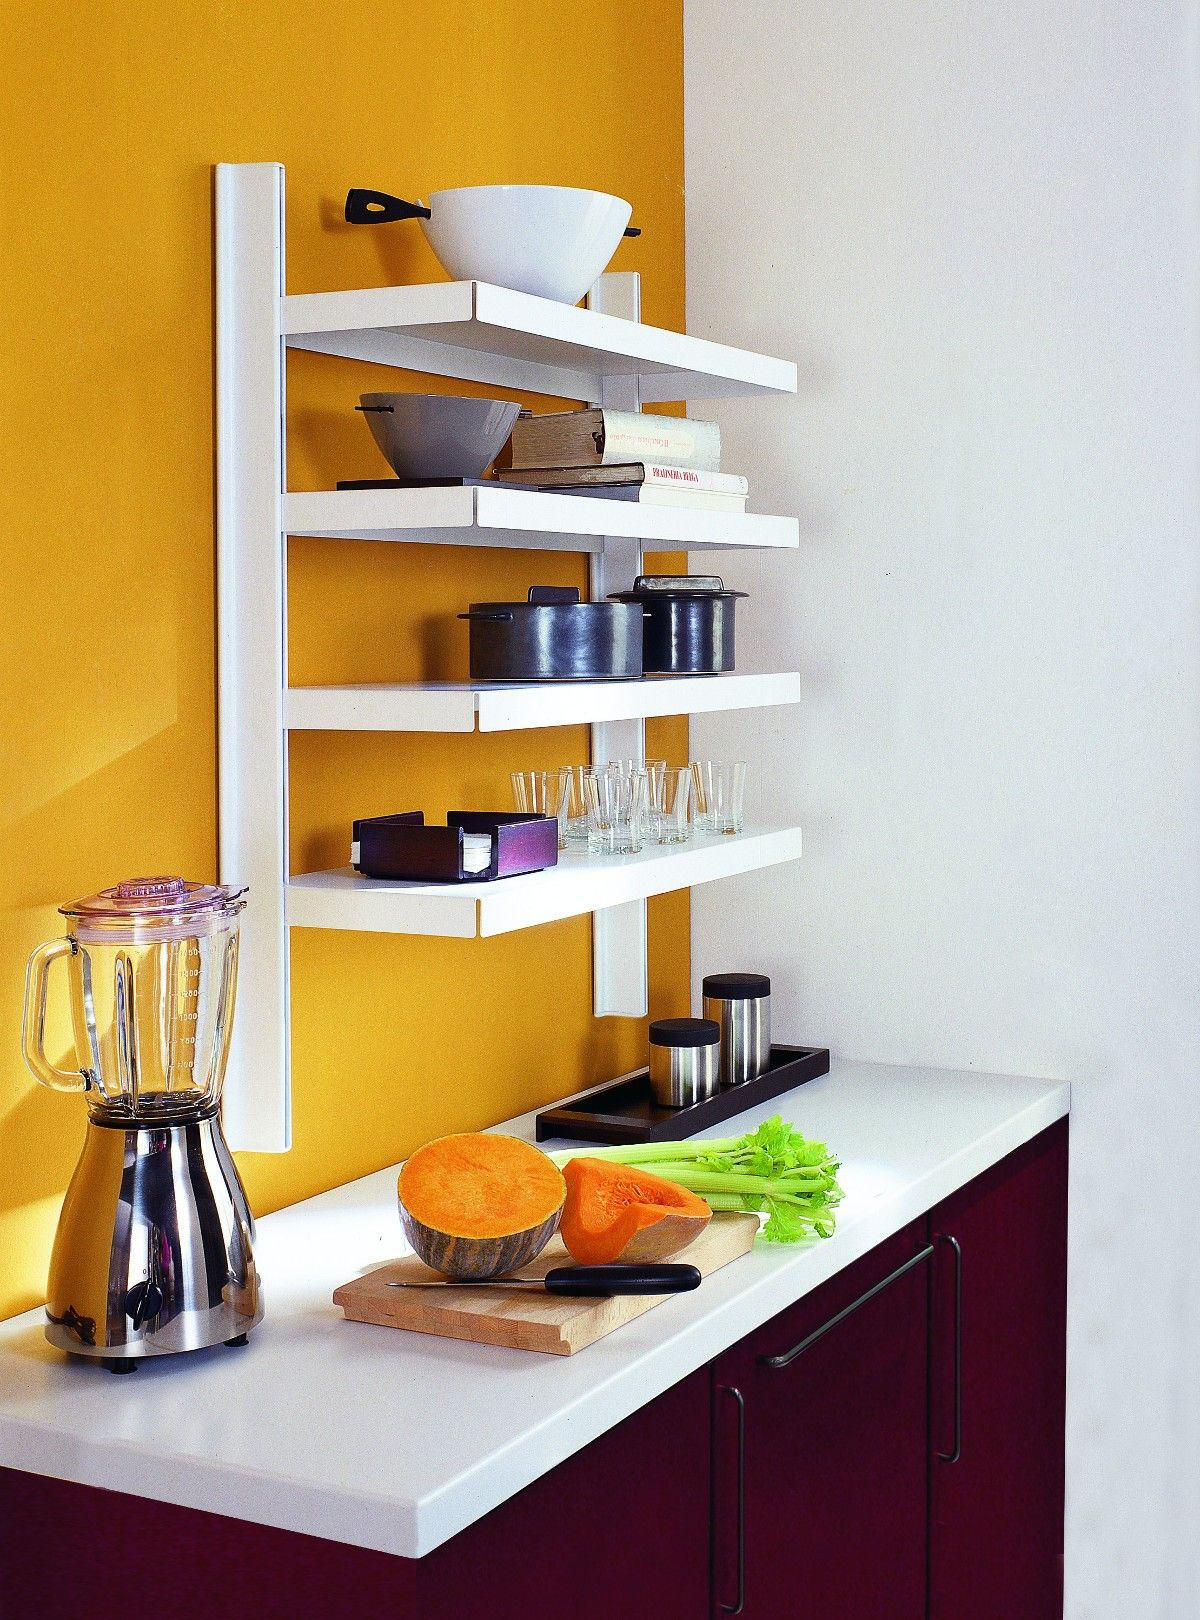 Awesome scaffali per dispensa cucina lx26 pineglen - Dispensa in cucina ...